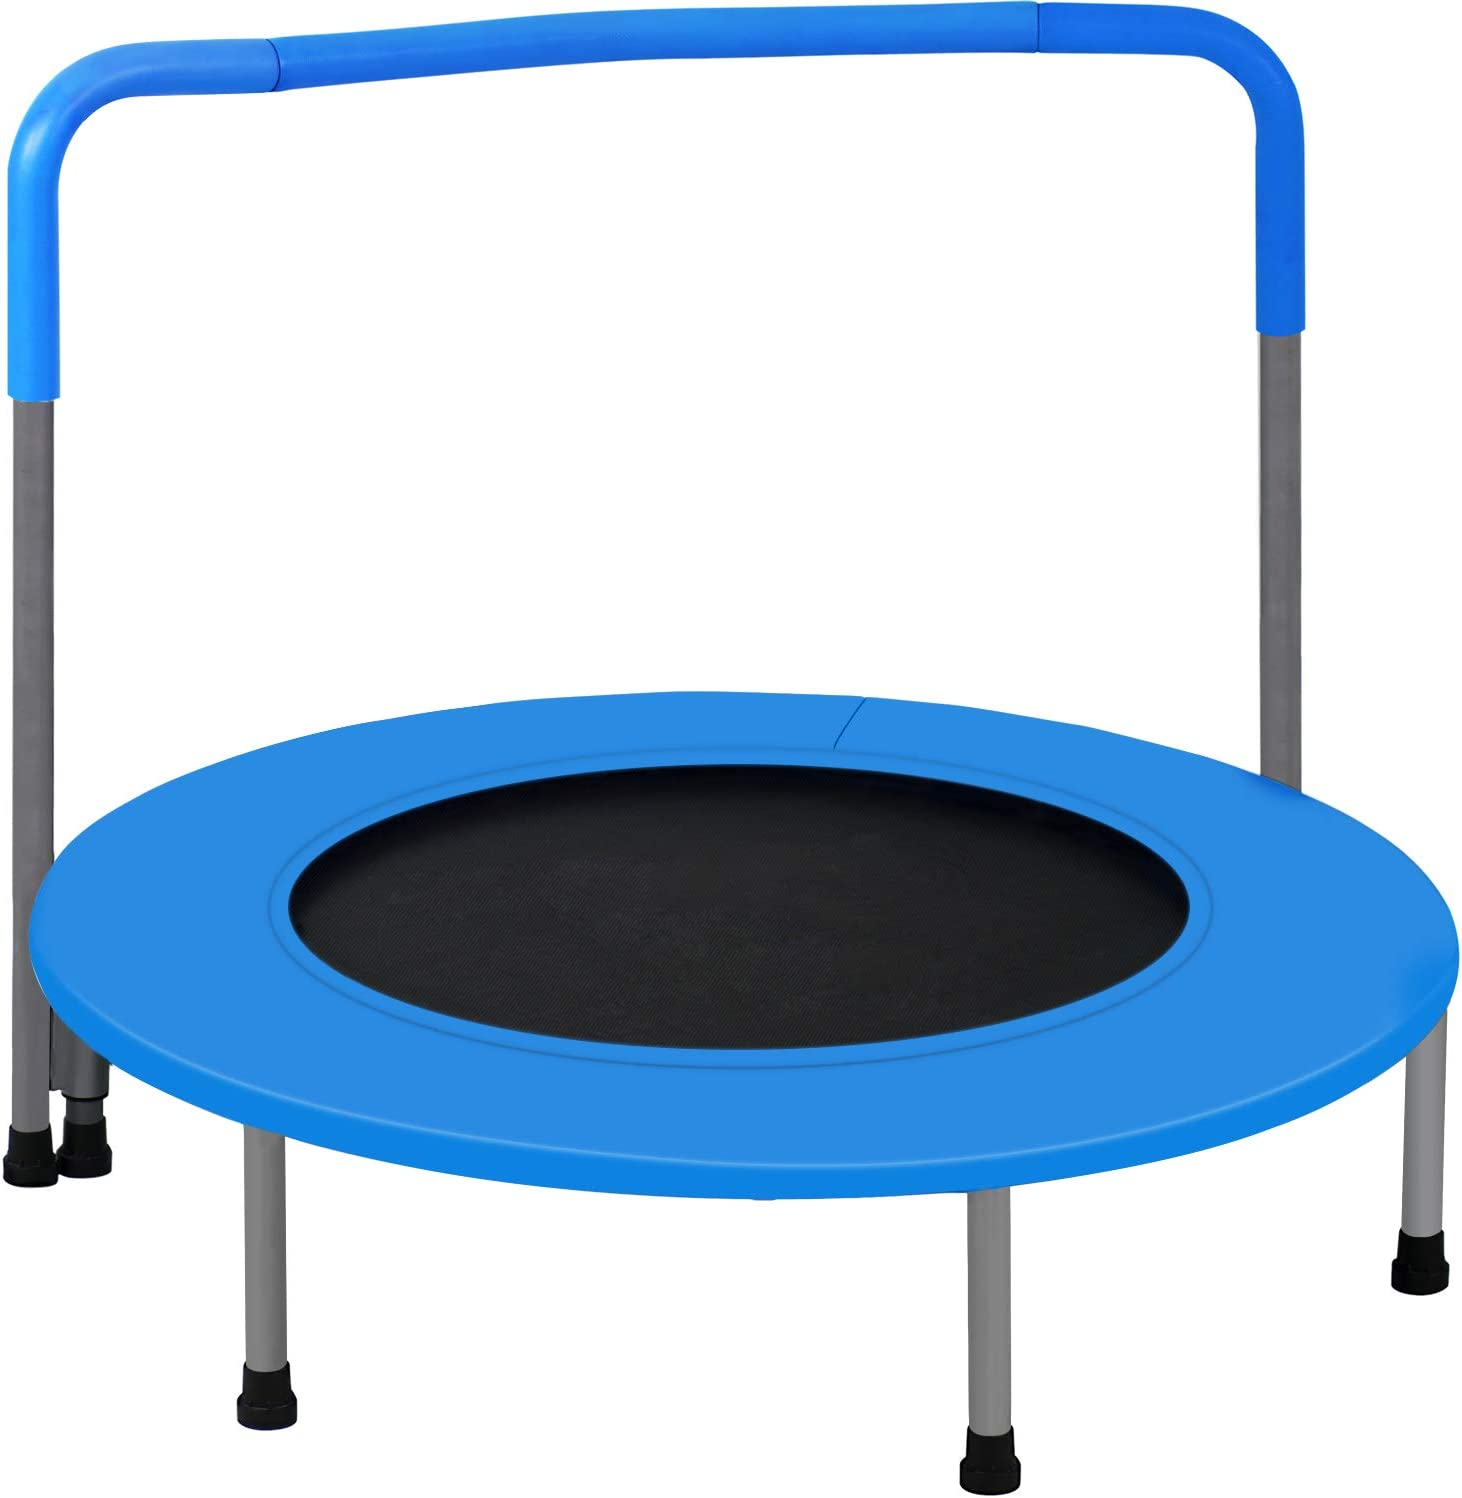 Mini Max 56% OFF Trampoline OFFicial store for Kids Sa 36inchs with Handle